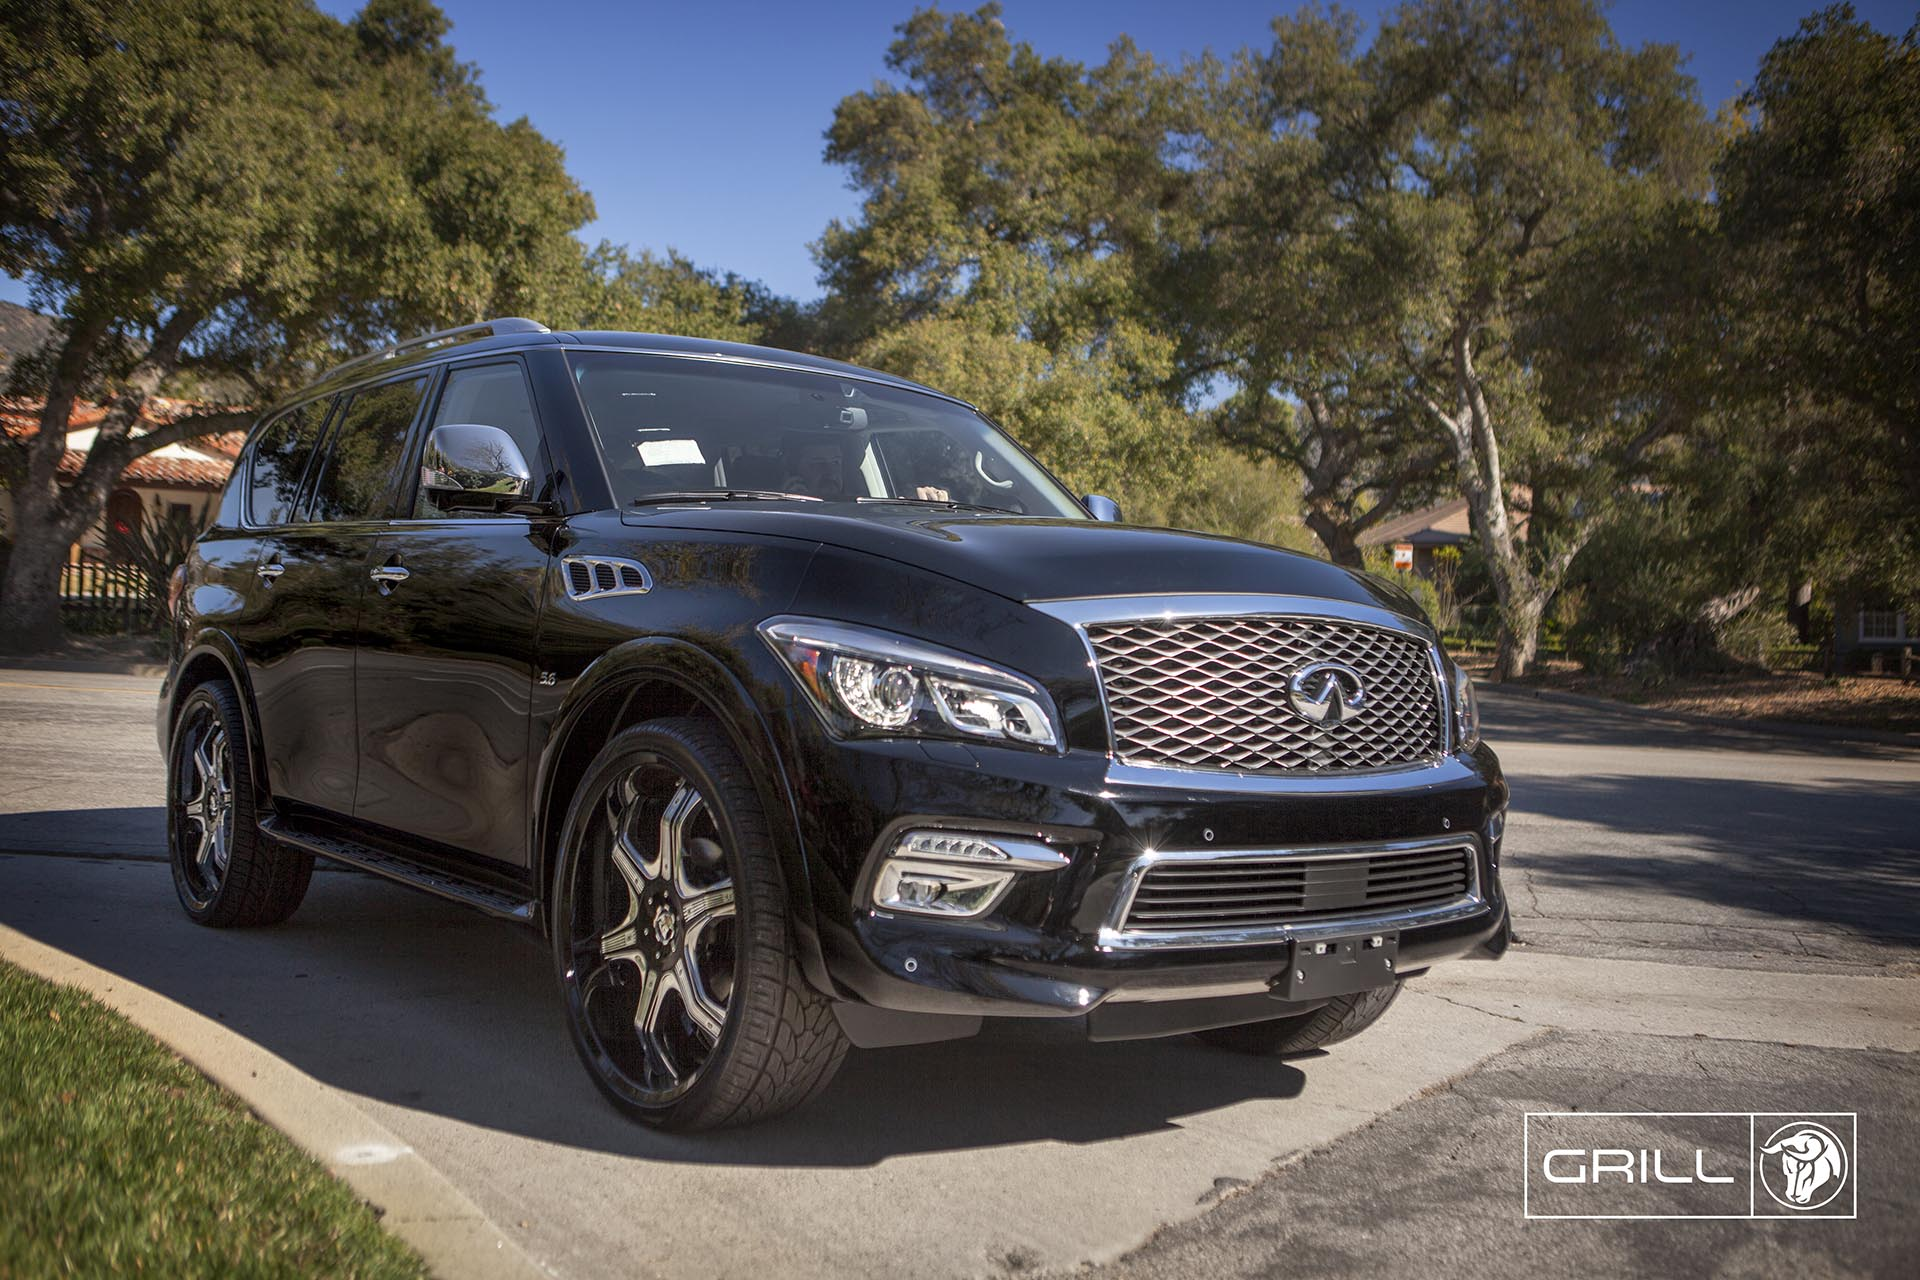 Chrome Diablo Grill Wheels on an Ifinity QX80